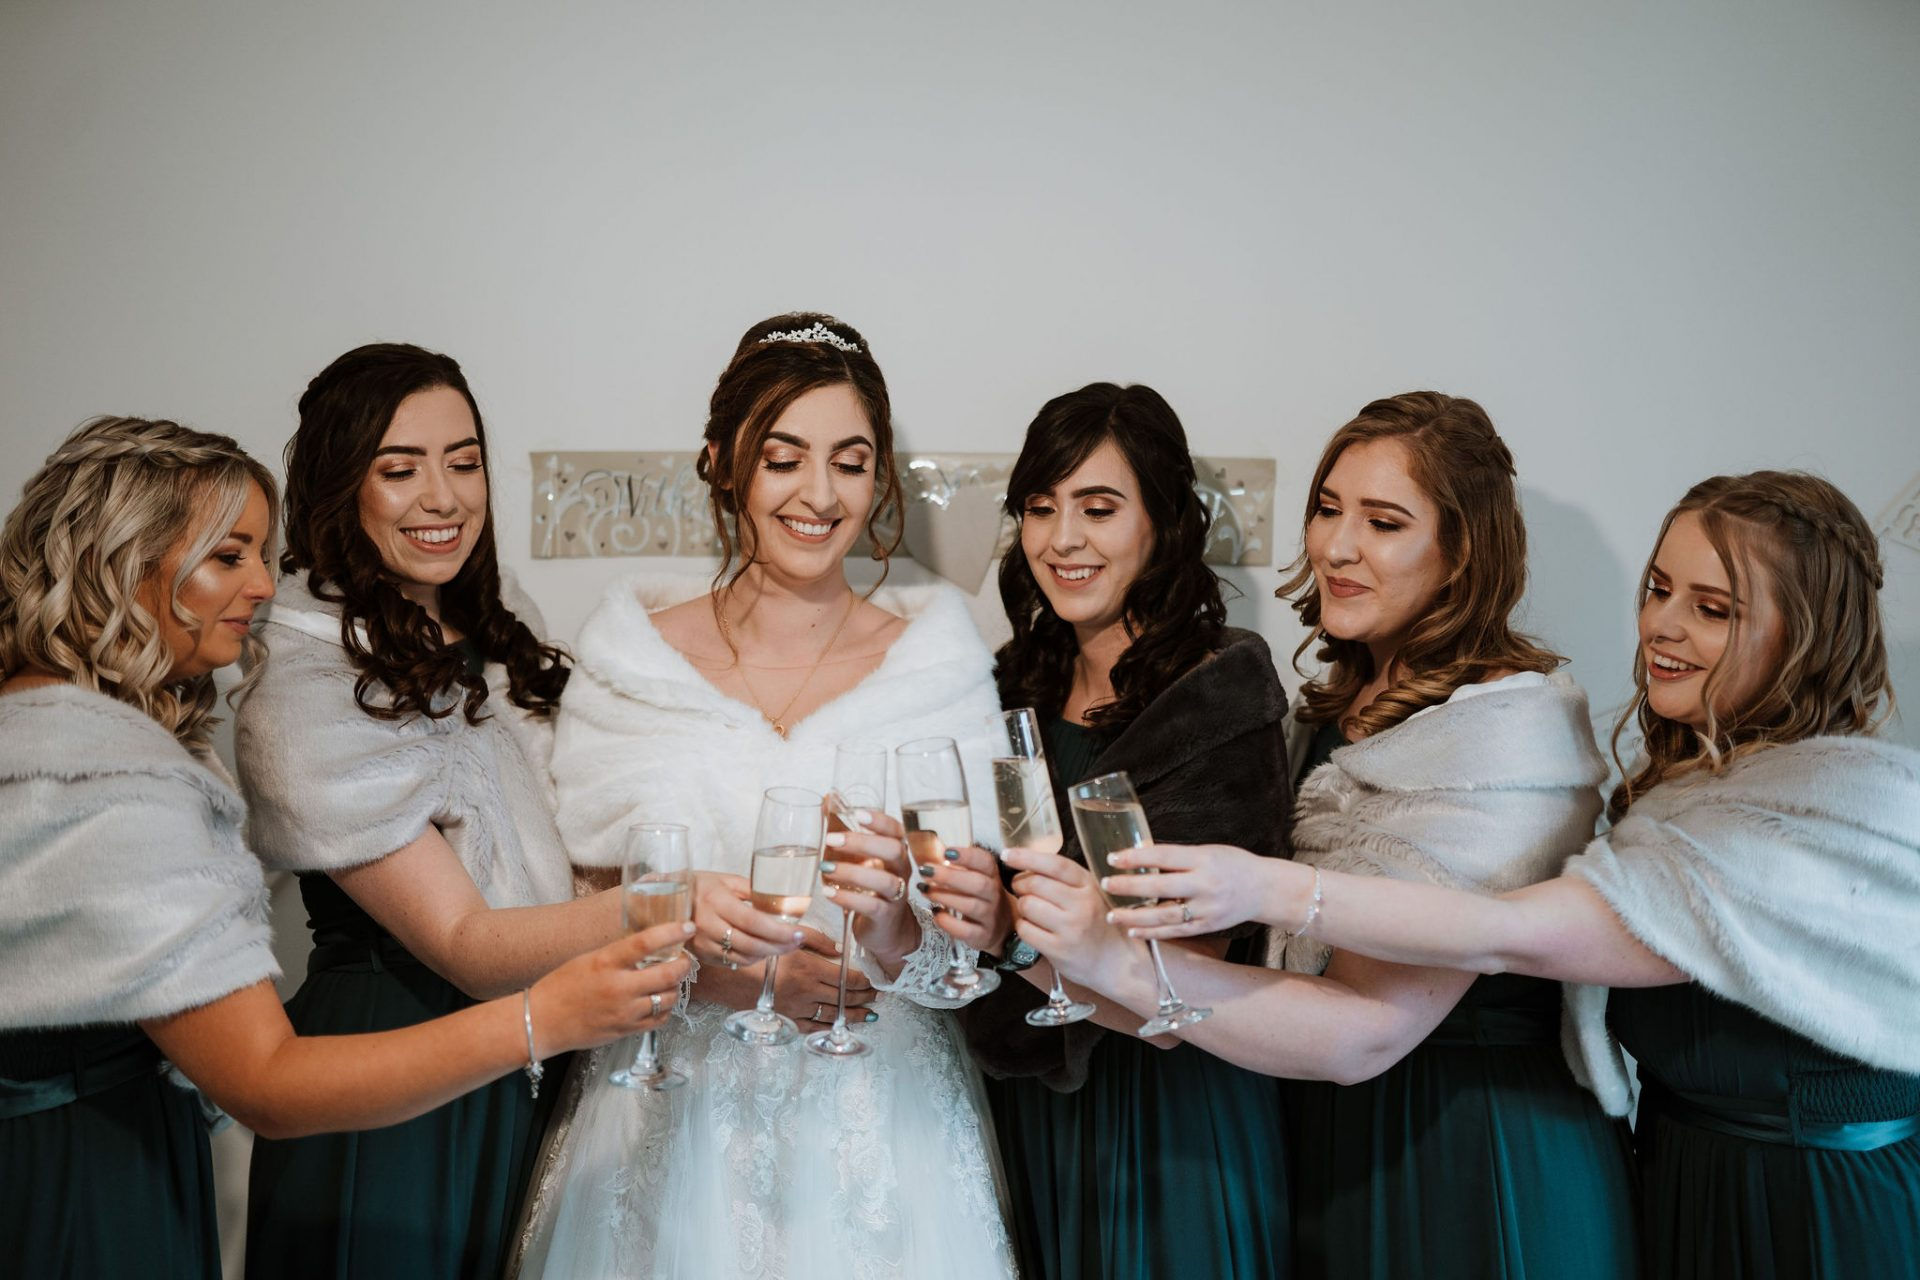 bridesmaids and brides toasting champagne glasses